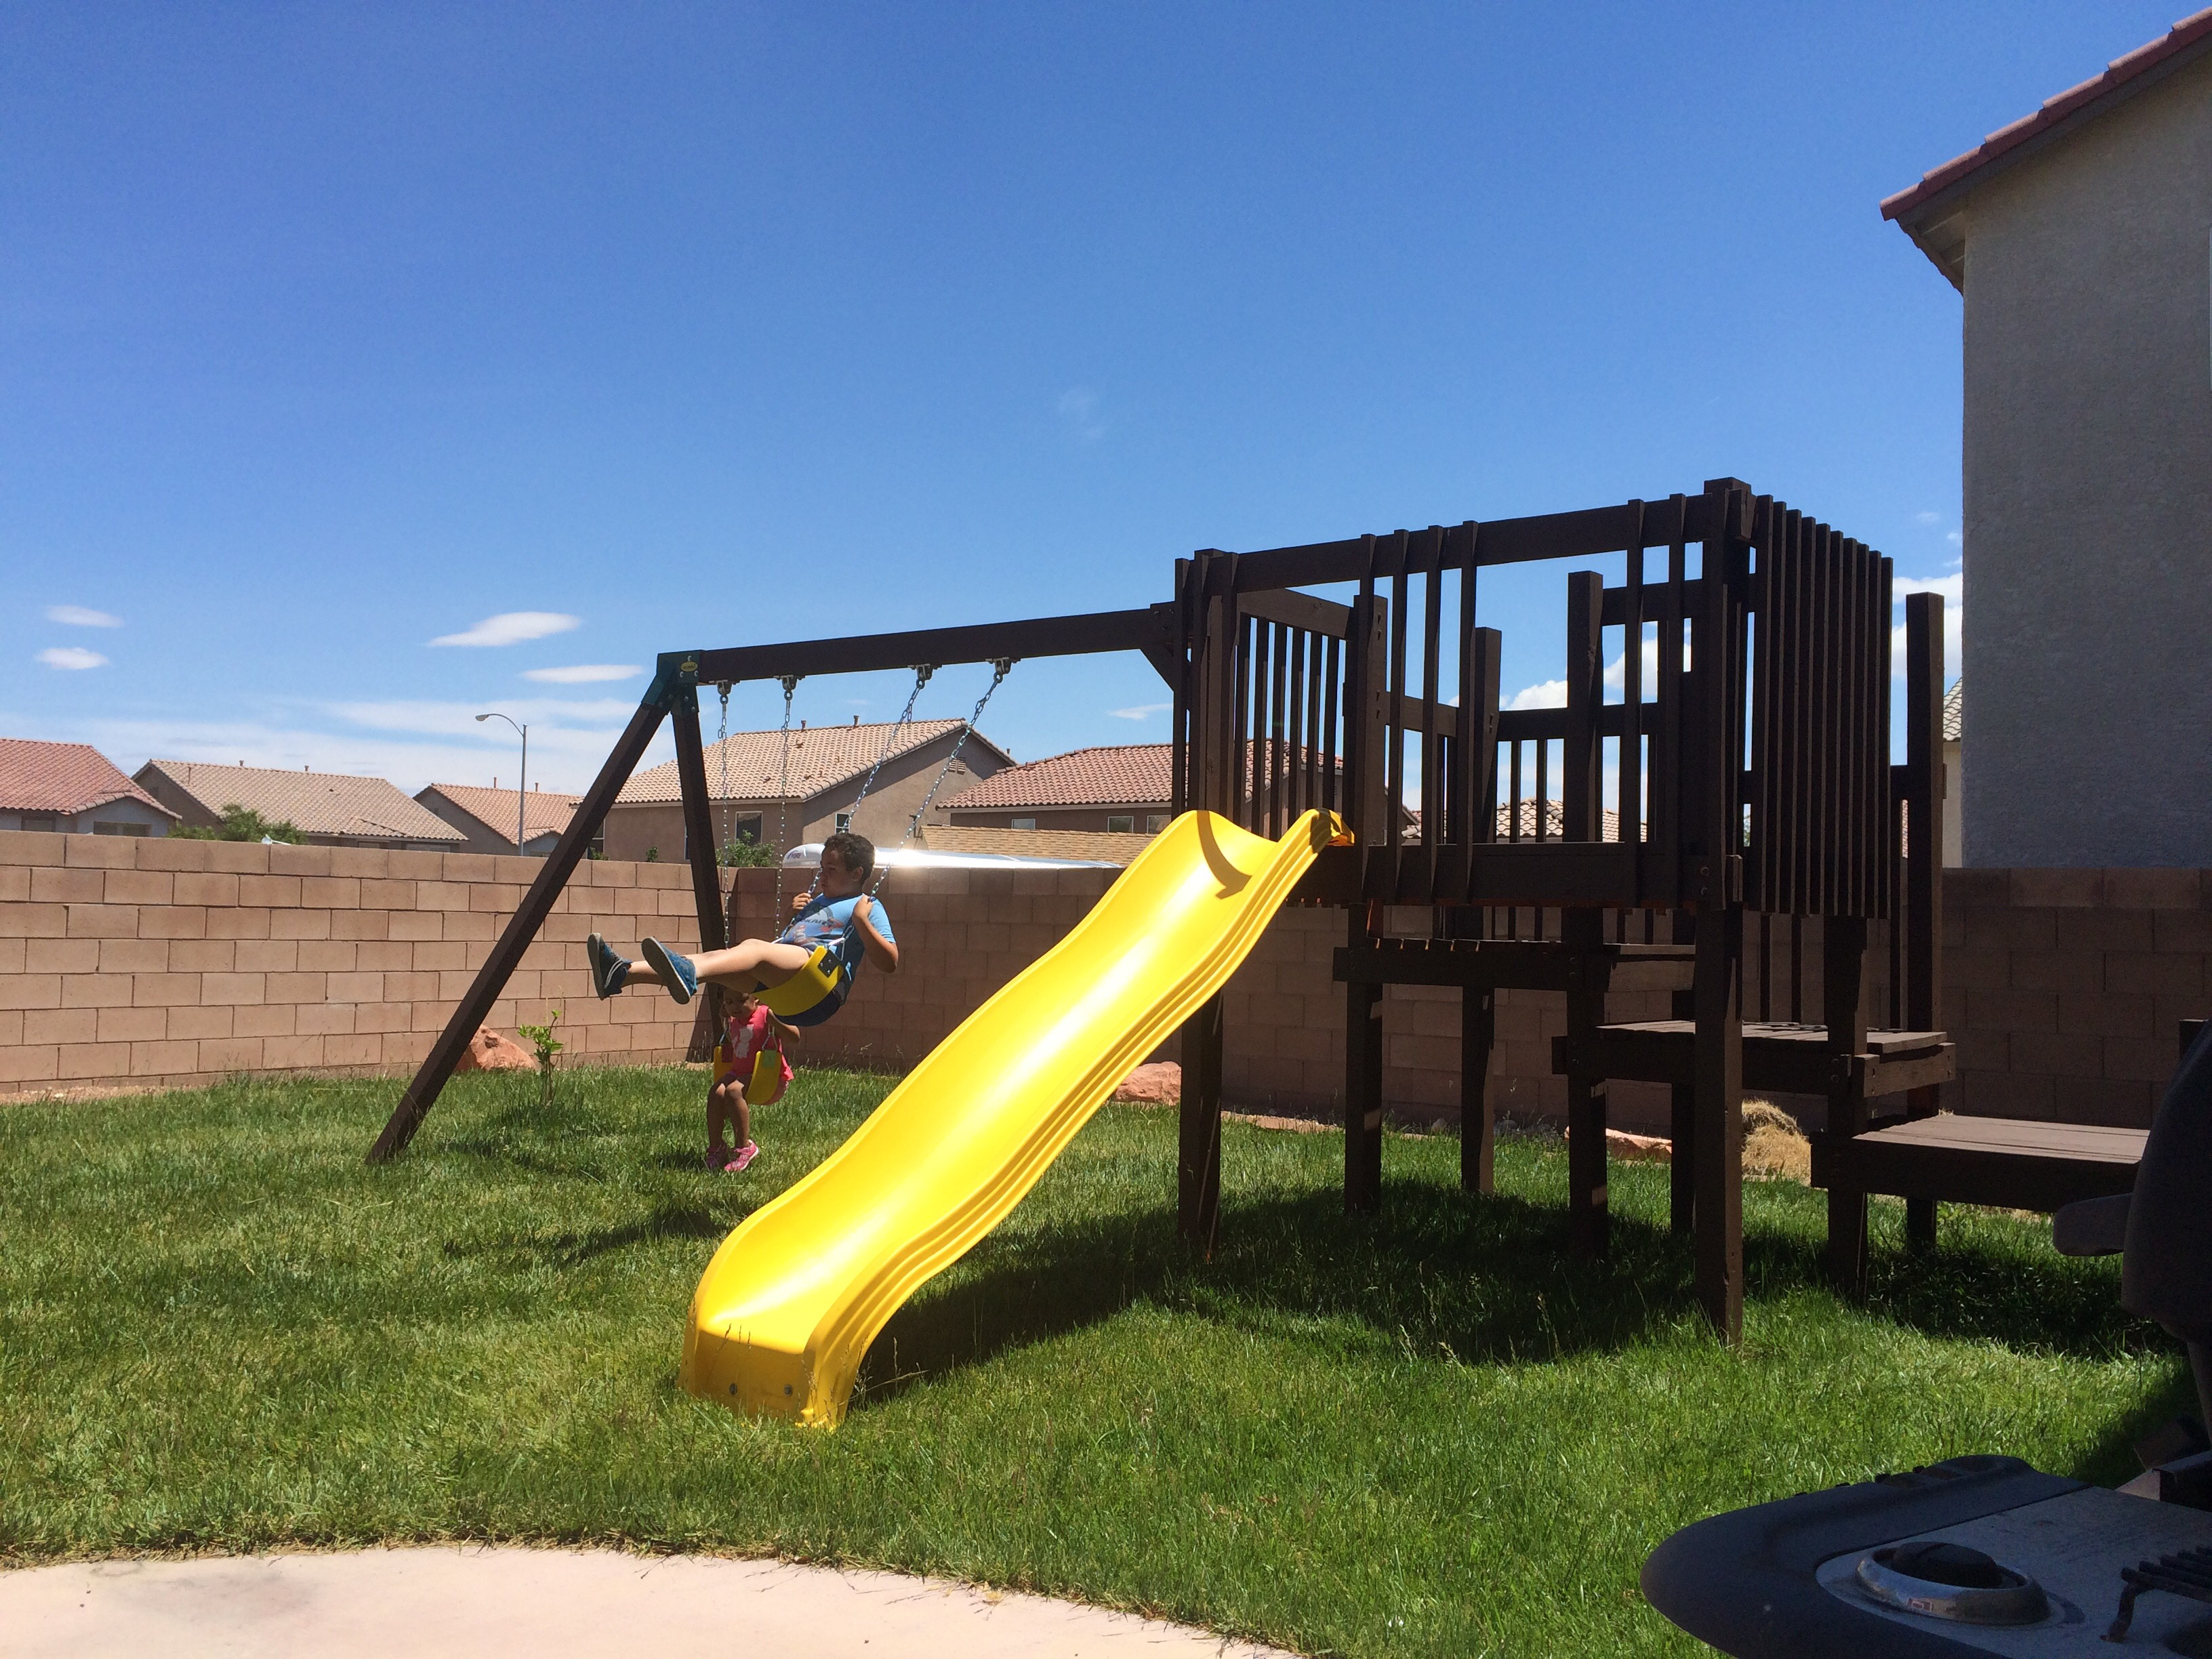 Picture of Homemade Playset